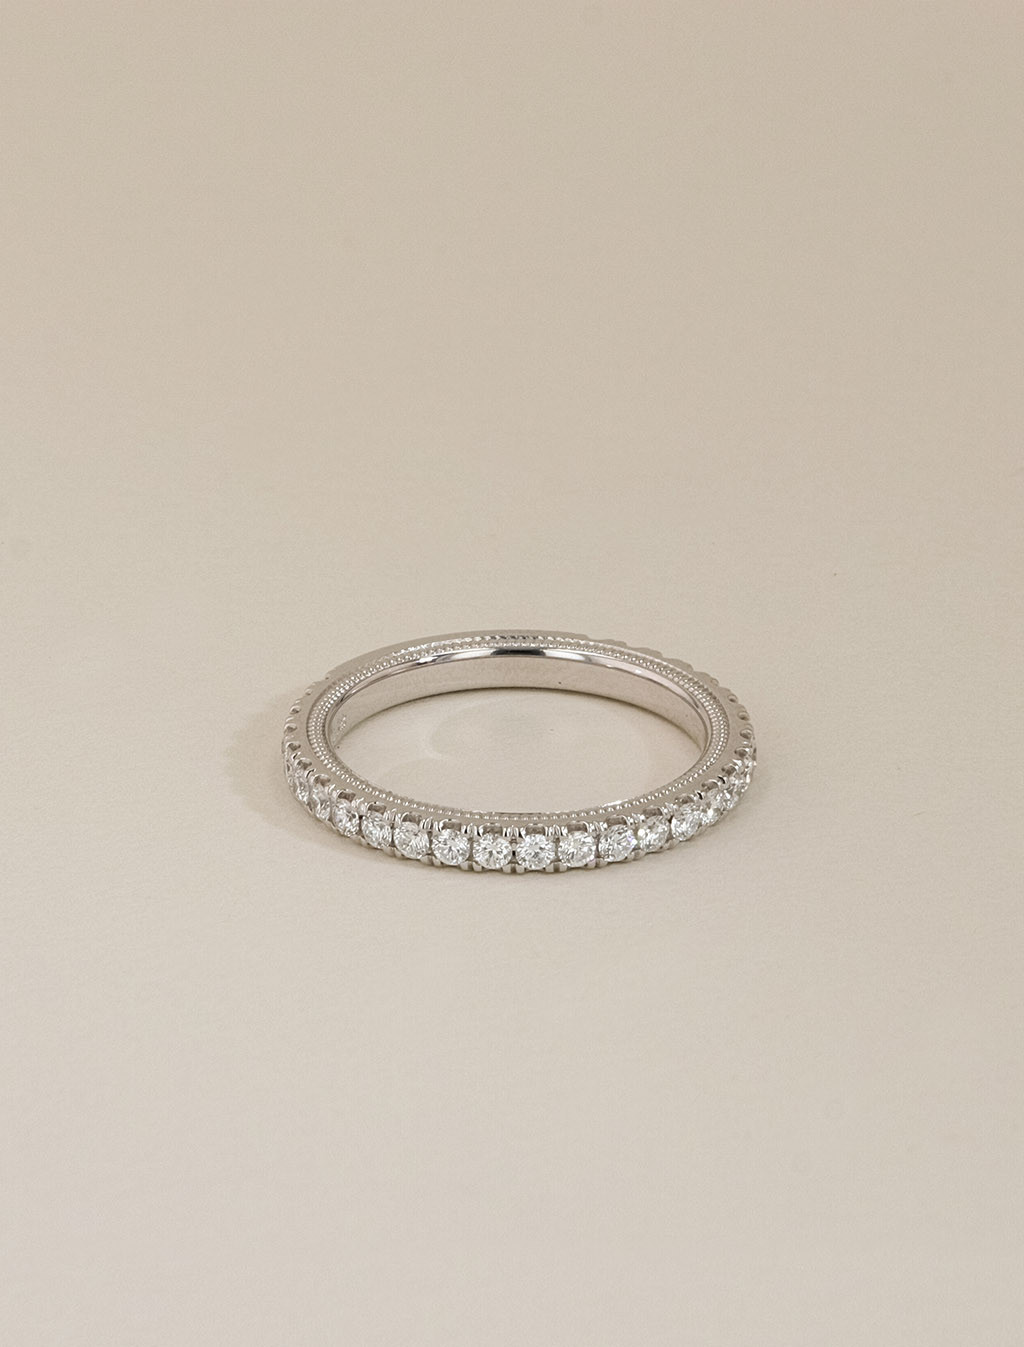 This is a picture of Verragio Tradition White Gold Diamond Wedding Band